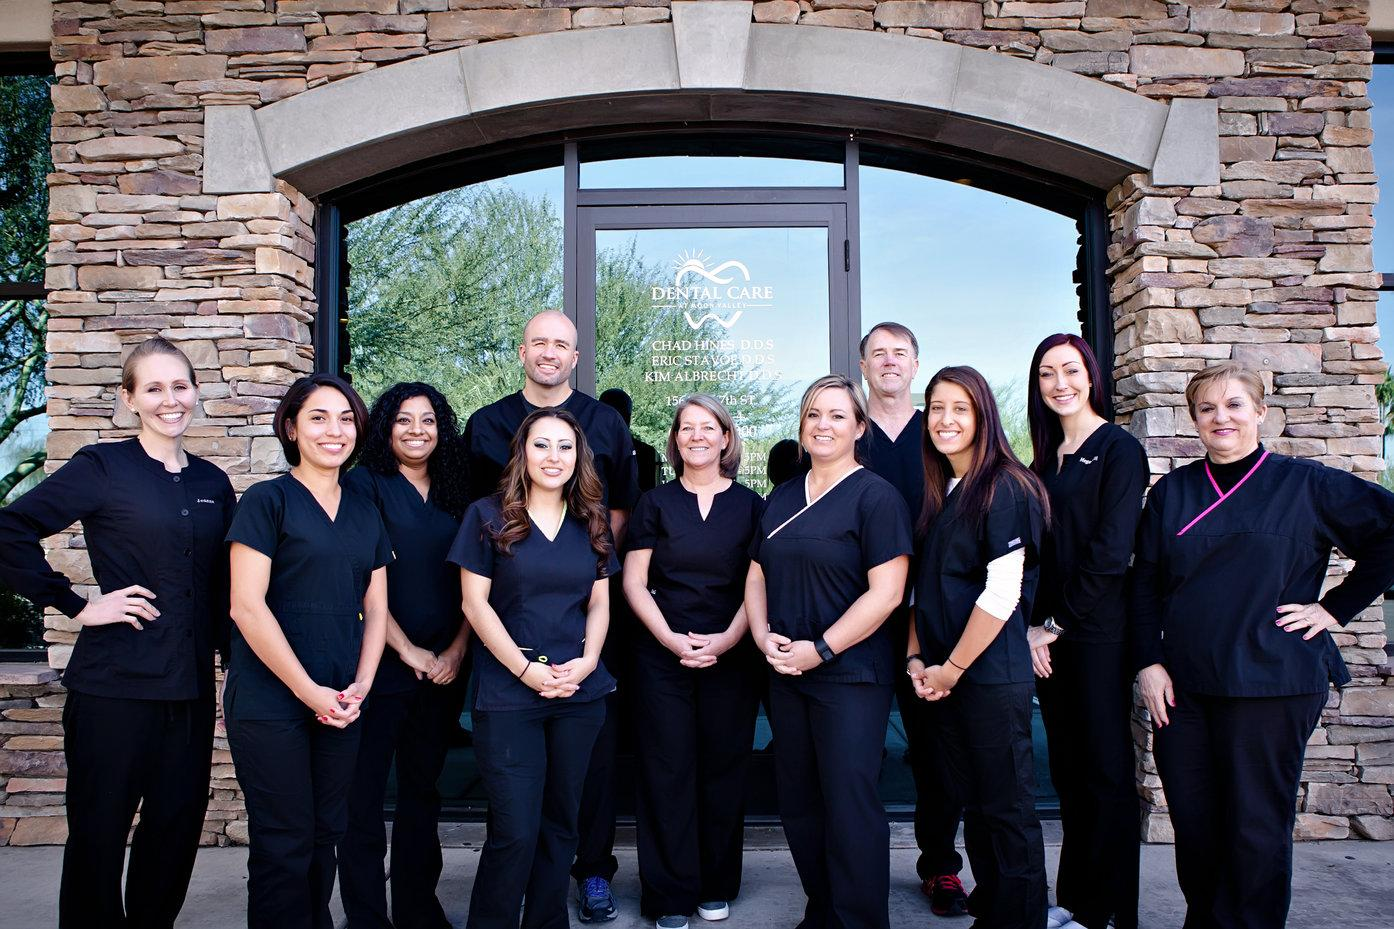 Our Team | Dental Care at Moon Valley